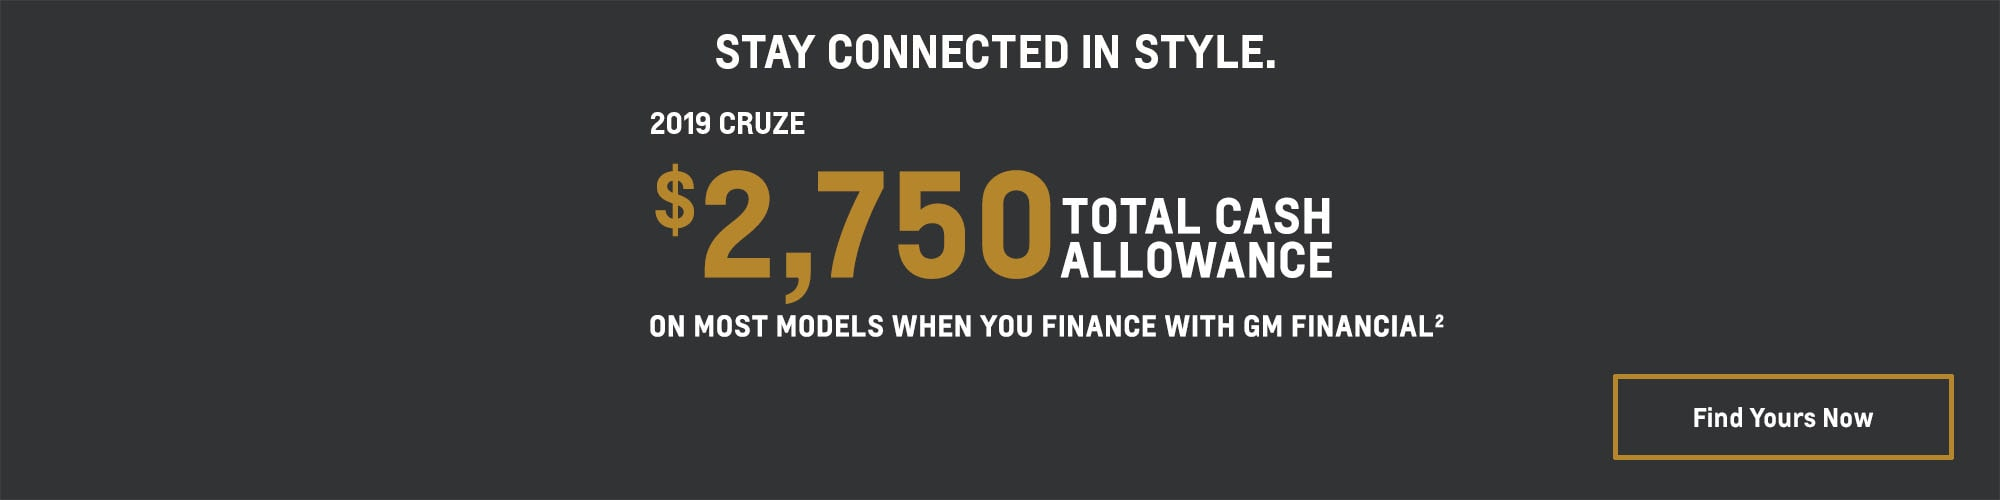 2019 Cruze: $2,750 Total Cash Allowance